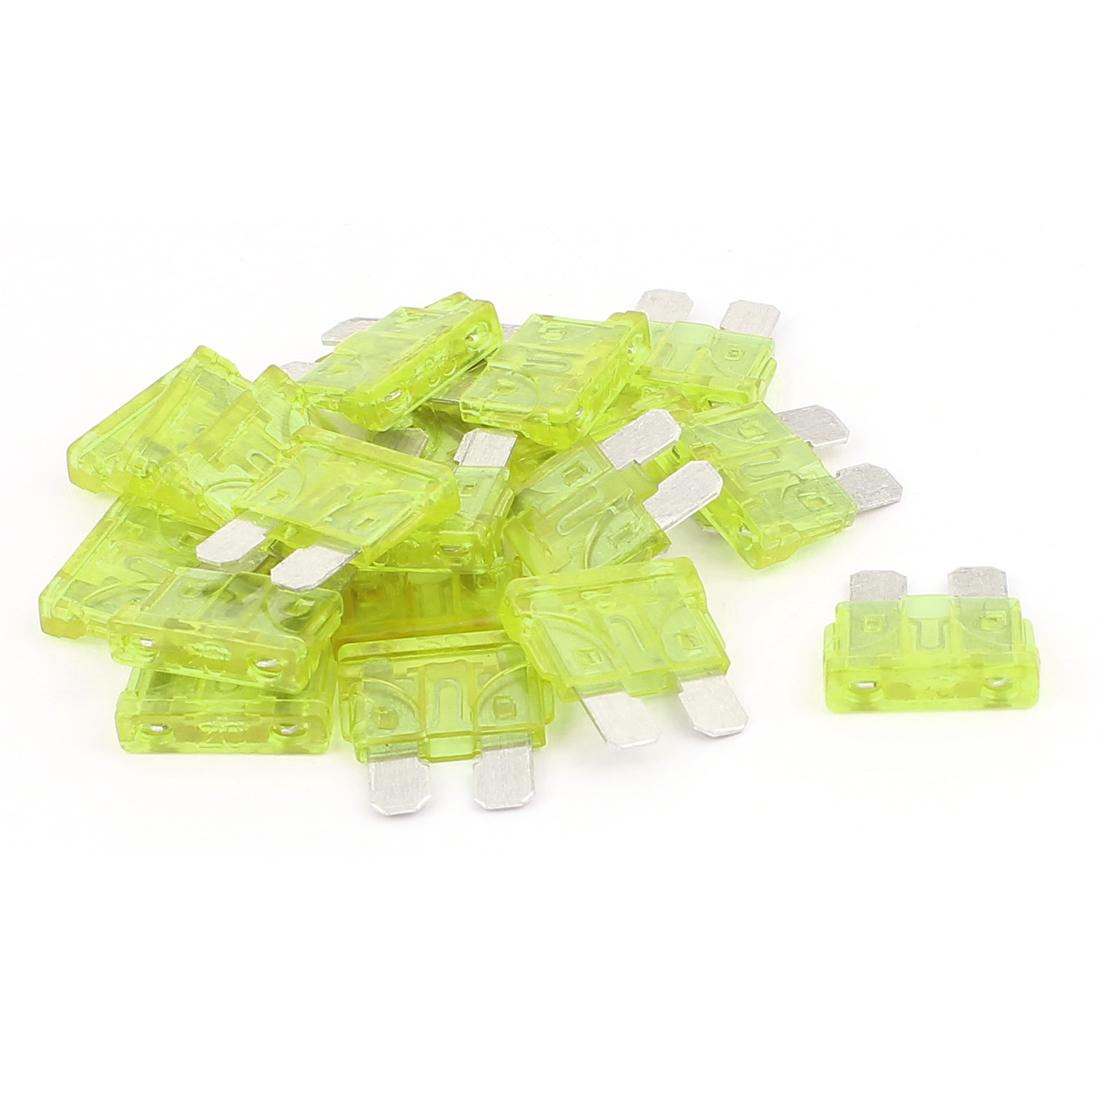 20pcs Auto Motorcycle Car Caravan SUV Boat ATC ATO Mini Blade Fuses 20A Yellow